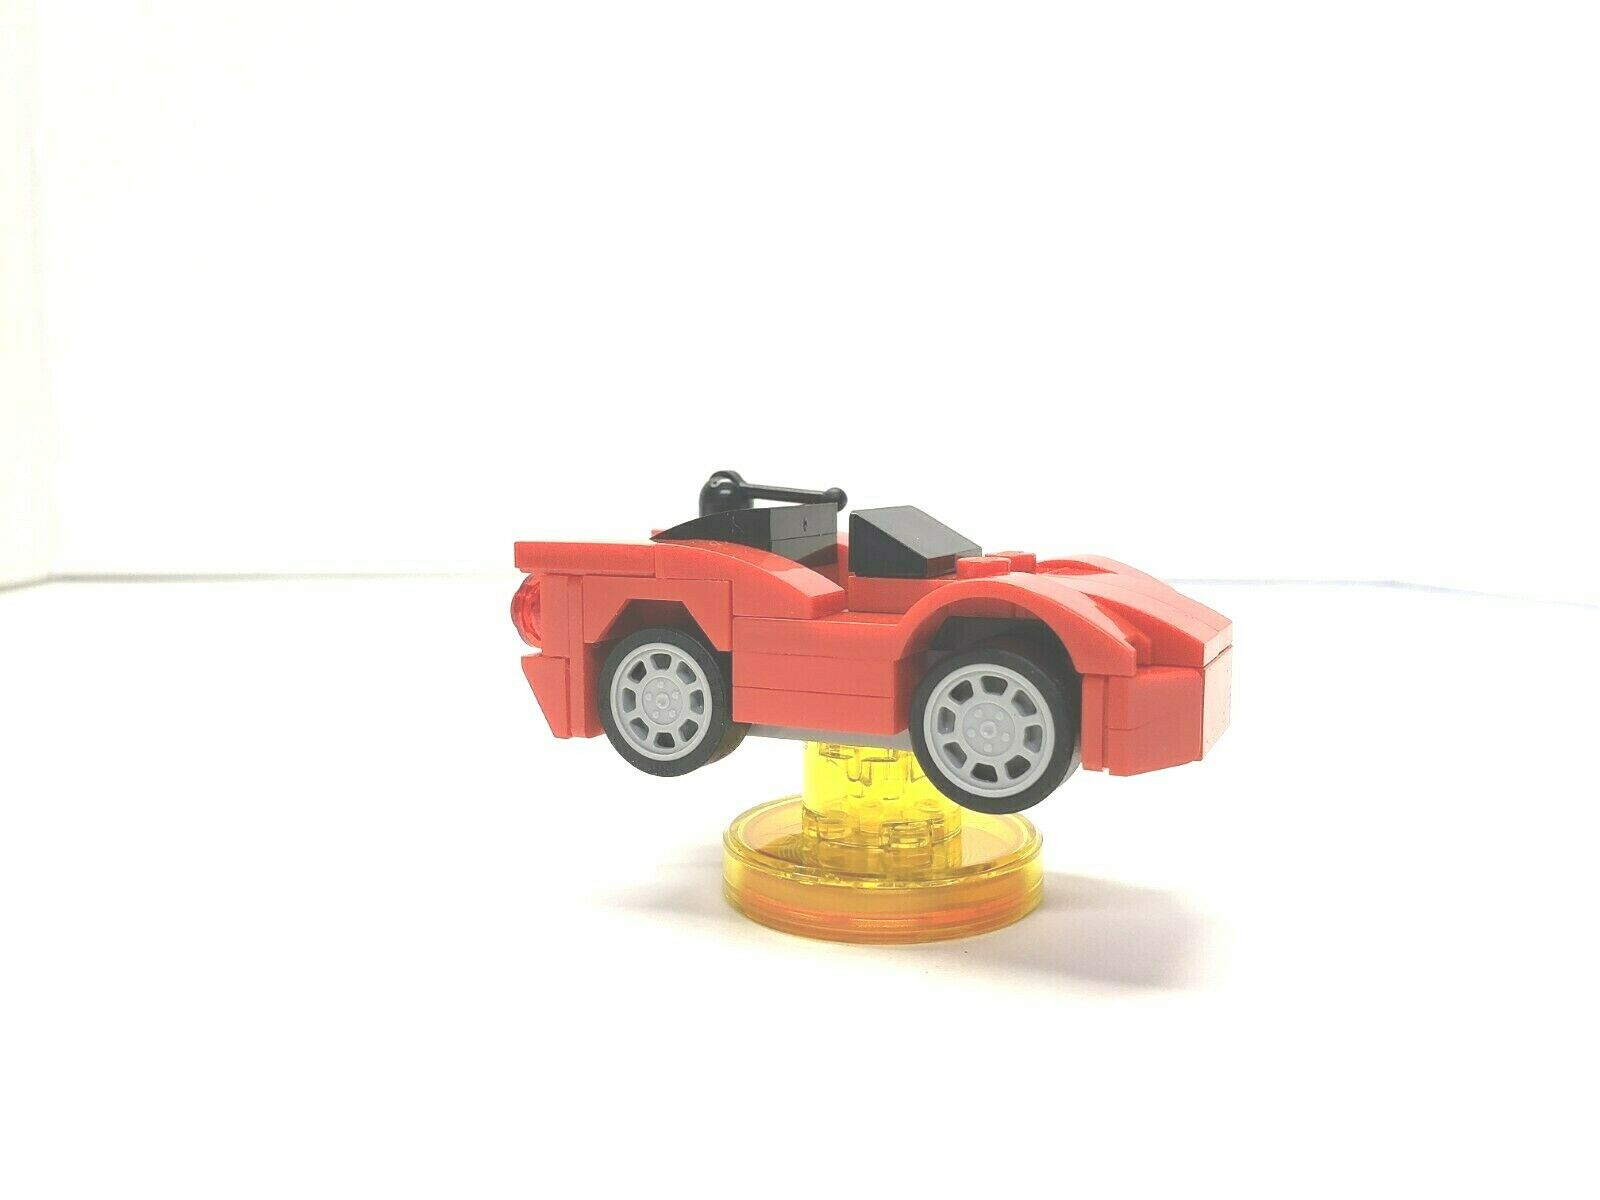 New Lego GIZMO/'s RC Car from Gremlins Movie Vehicle Mini Build